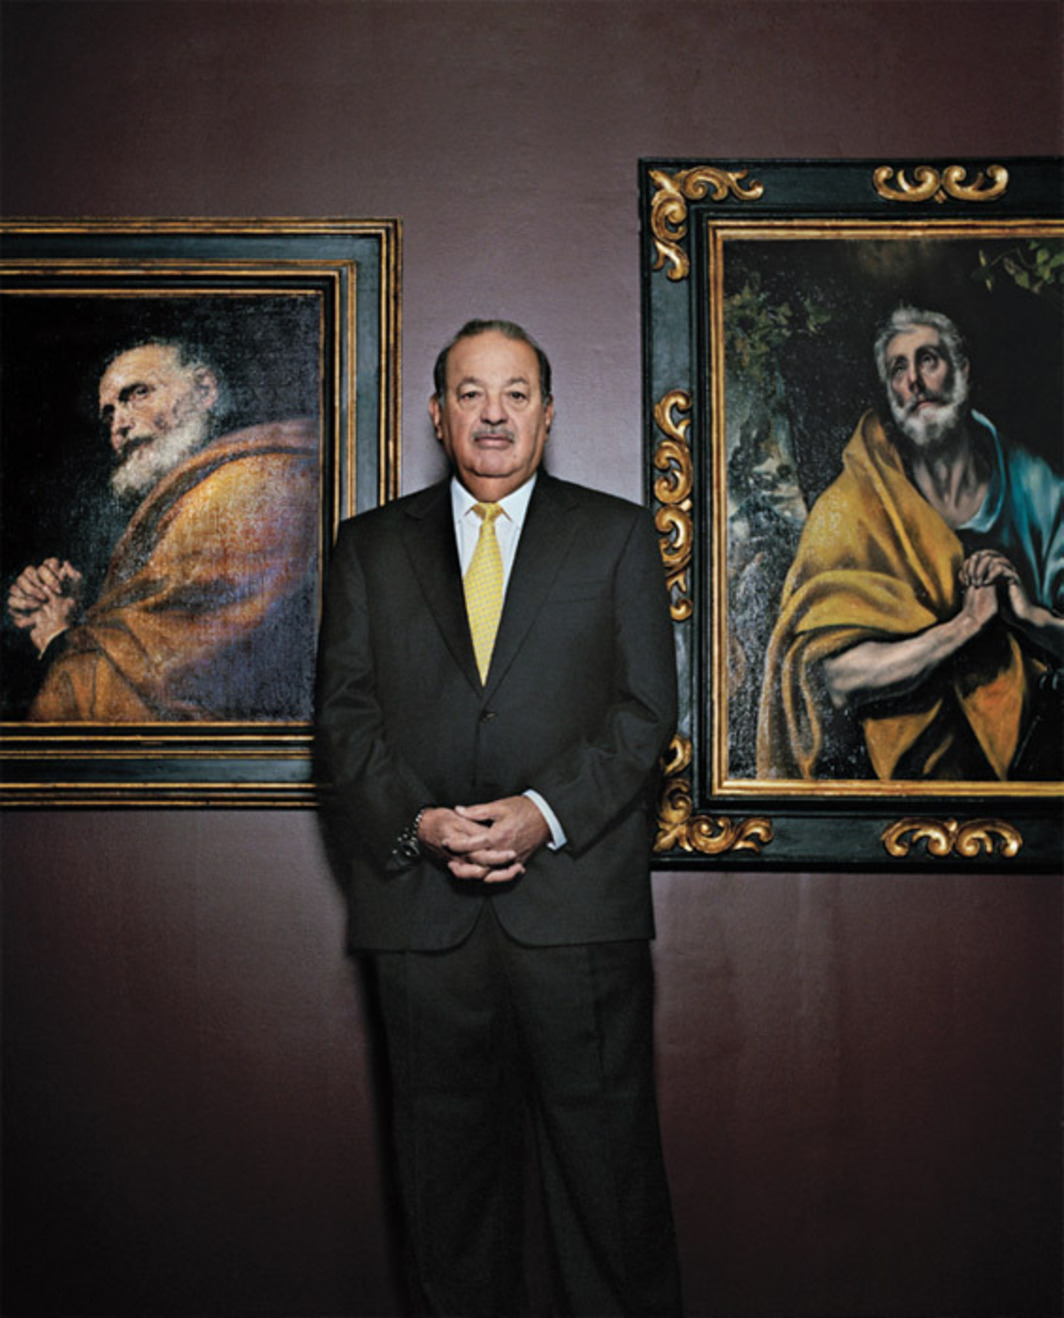 "*Livia Corona, _Carlos Slim, world's richest man, with two paintings from his collection. Mexico City_, 2010*, color photograph, 3 1/2 x 2 1/2"". From the series ""_Fotos Finas_"" (Fine Photos), 2000–."